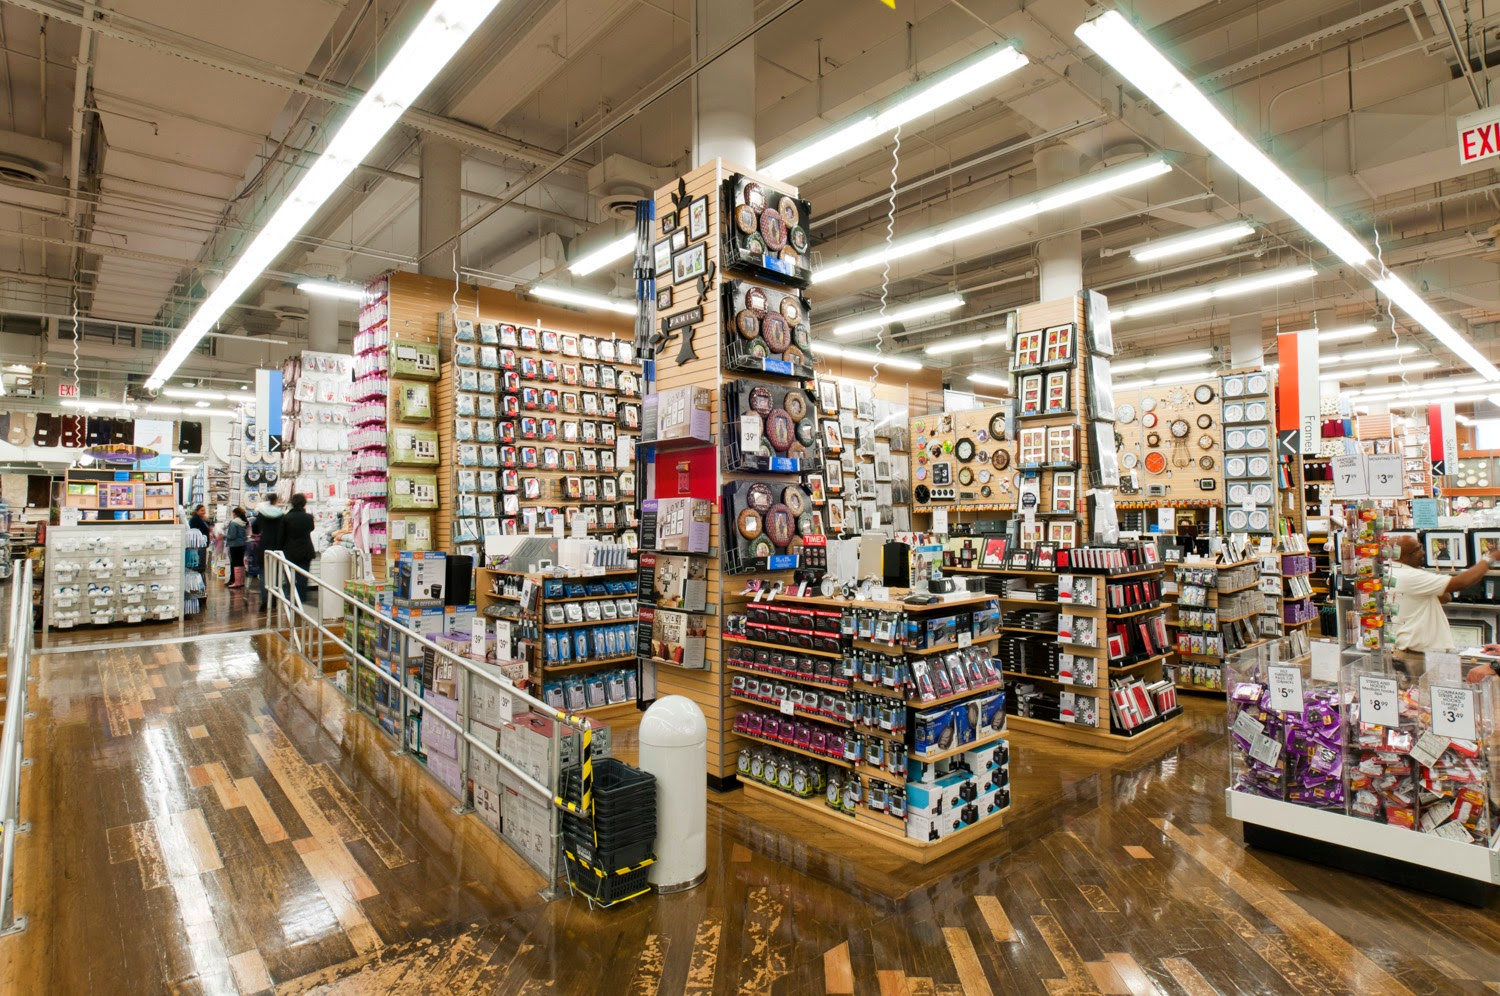 Click the links above to use our Bed Bath and Beyond store locator. Shoppers can find a wide variety of quality home goods. Search for exciting products for every room in your house. With over 1, convenient locations, the company continues to grow each year. There is sure to be a Bed Bath and Beyond near you.